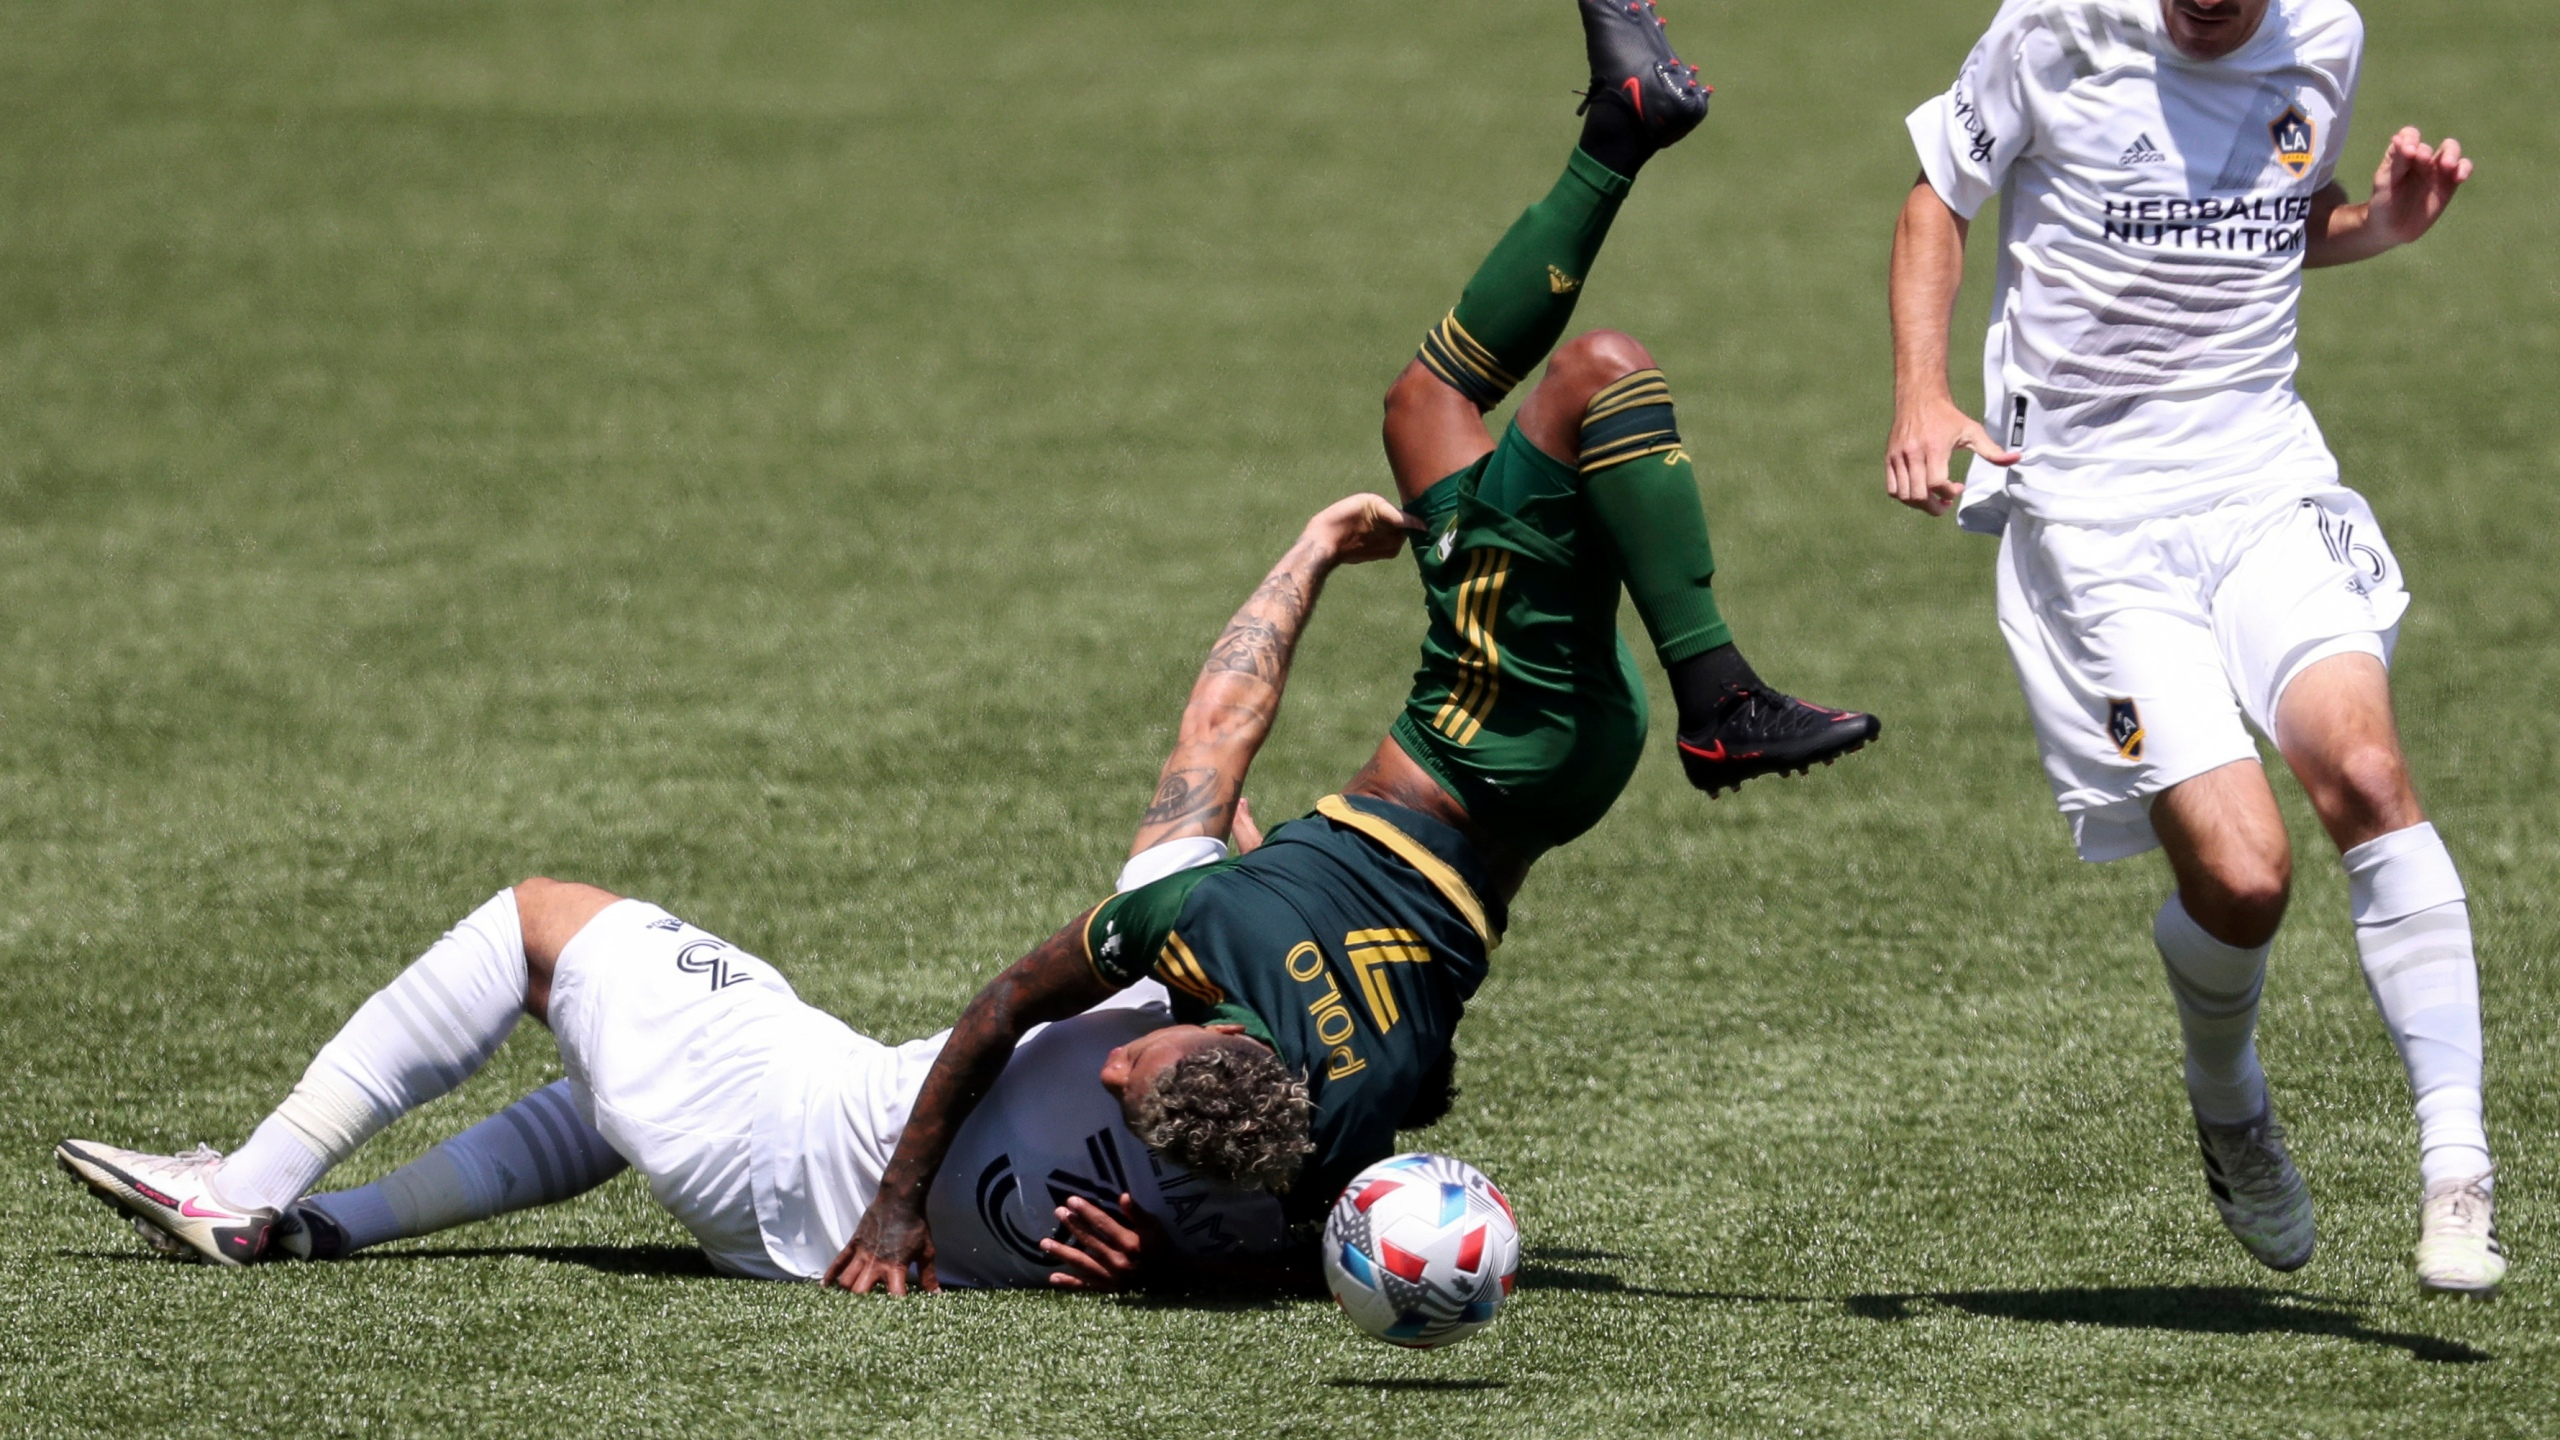 Portland Timbers midfielder Andy Polo (7) flips over Los Angeles Galaxy defender Derrick Williams (3) as L.A. Galaxy midfielder Sacha Kljestan (16) runs alongside them during the first half of an MLS soccer match on May 22, 2021, in Portland, Ore. Williams received a red card for the foul. (Amanda Loman / Associated Press)